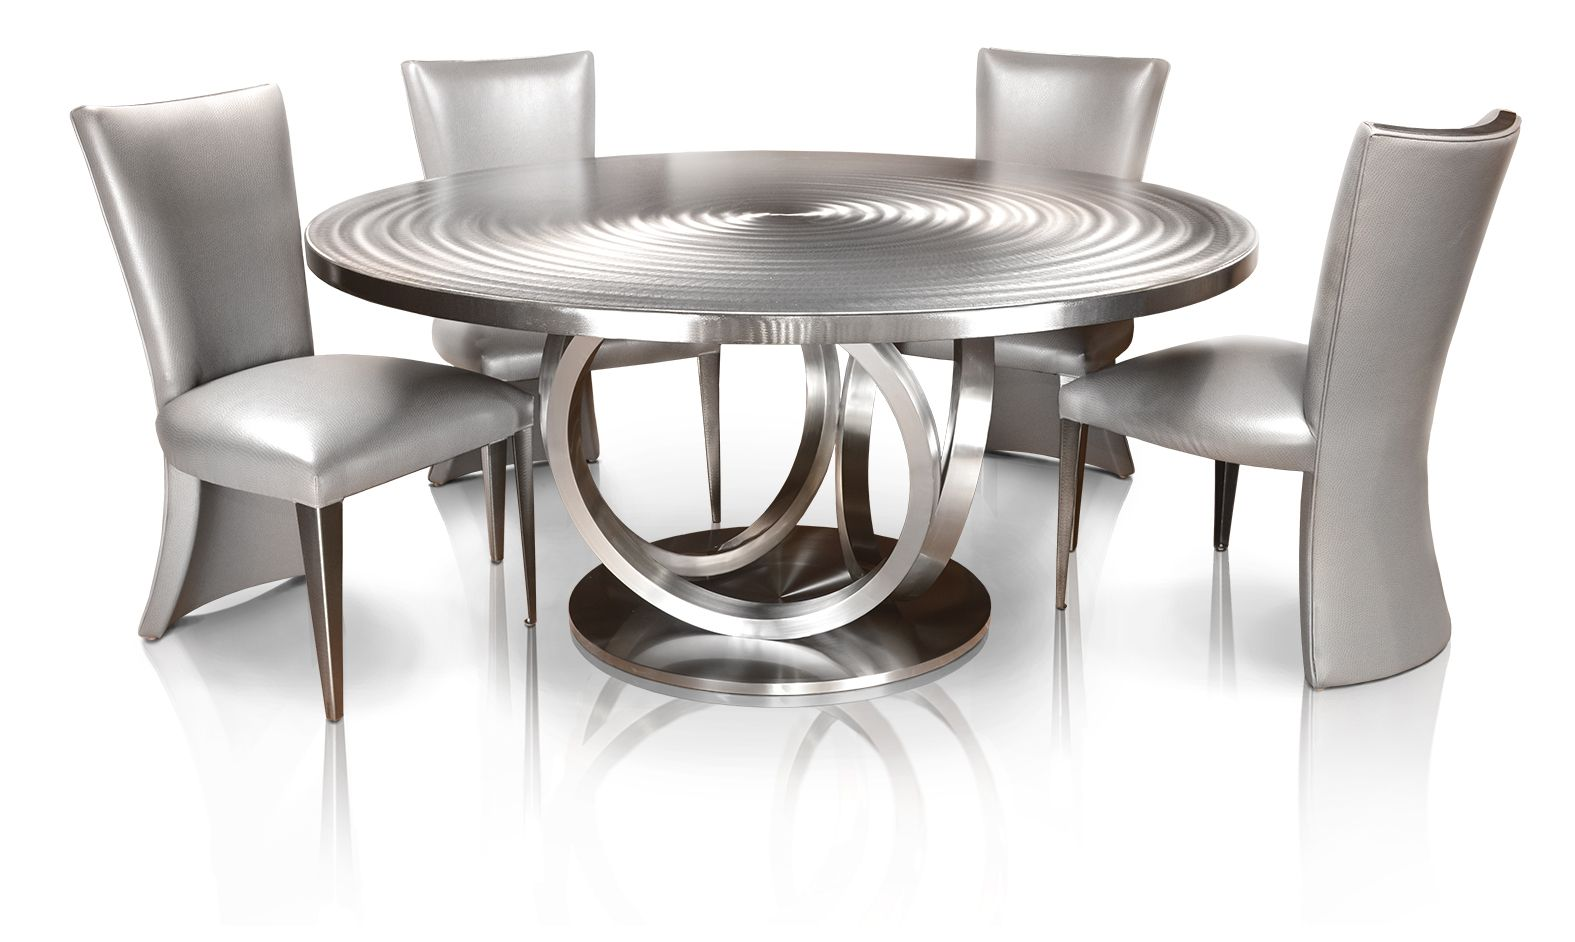 "66"" Round Stainless Steel Metal Dining Table by Oios Metals"